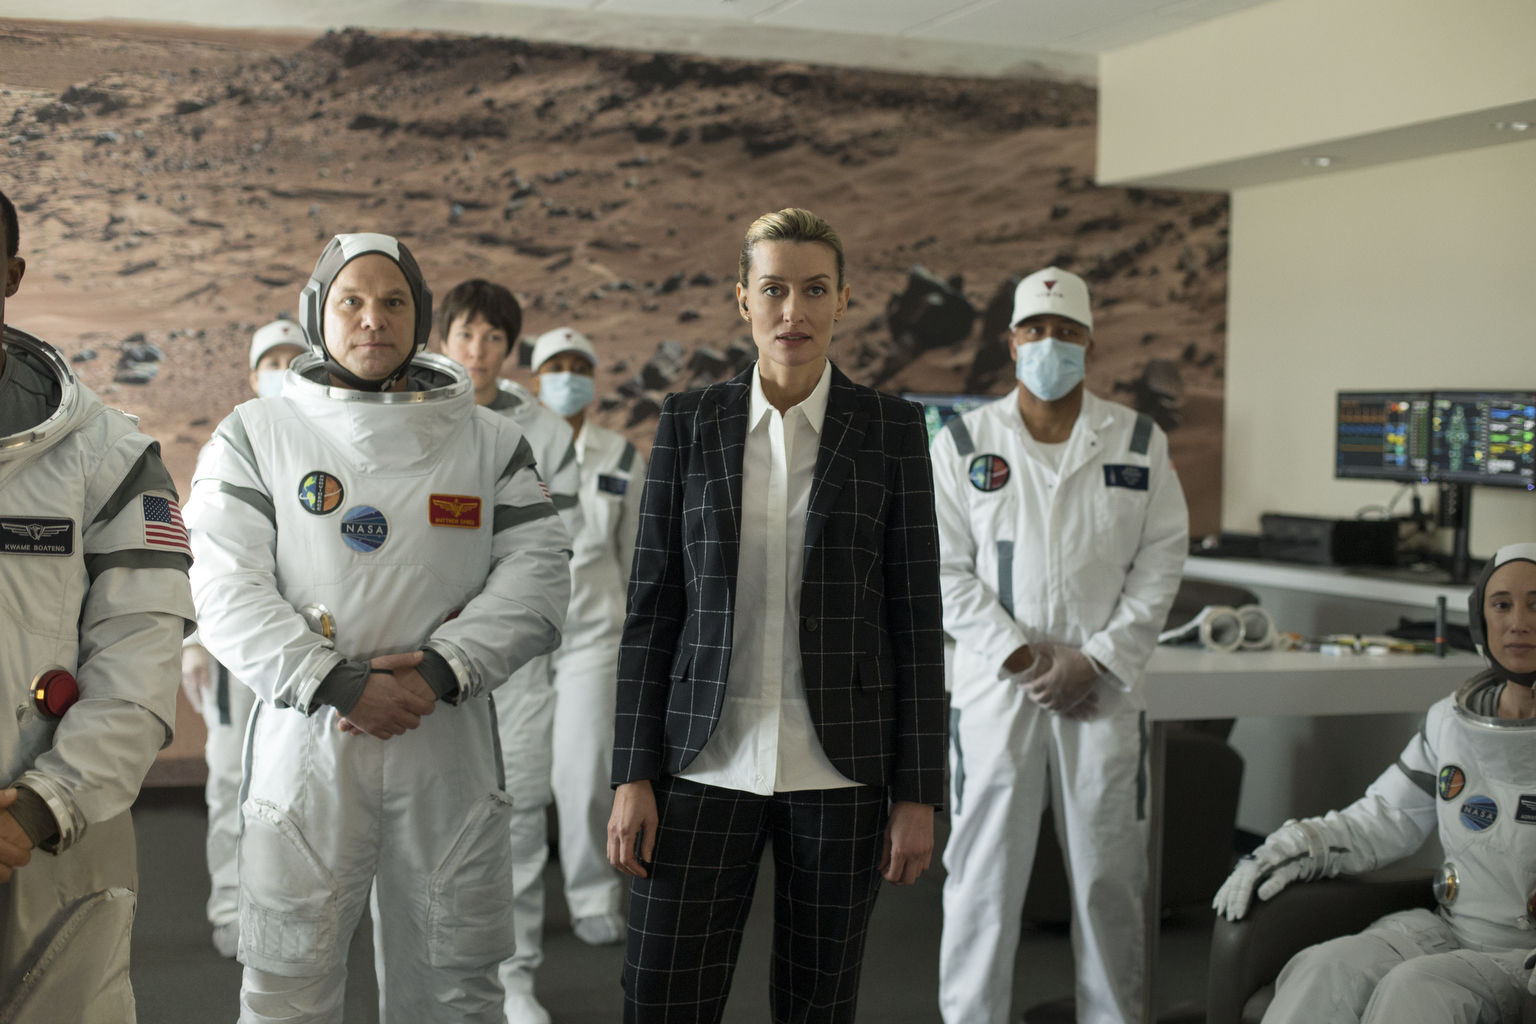 THE FIRST -- Sean Penn leads an ensemble cast in this near-future drama about a crew of astronauts attempting to become the first humans on Mars. Under the direction of visionary aerospace magnate Laz Ingram (Natascha McElhone), the crew contends with peril and personal sacrifice as they undertake the greatest pioneering feat in human history. Laz Ingram (Natascha McElhone), shown. (Photo by: Paul Schrimaldi/Hulu)